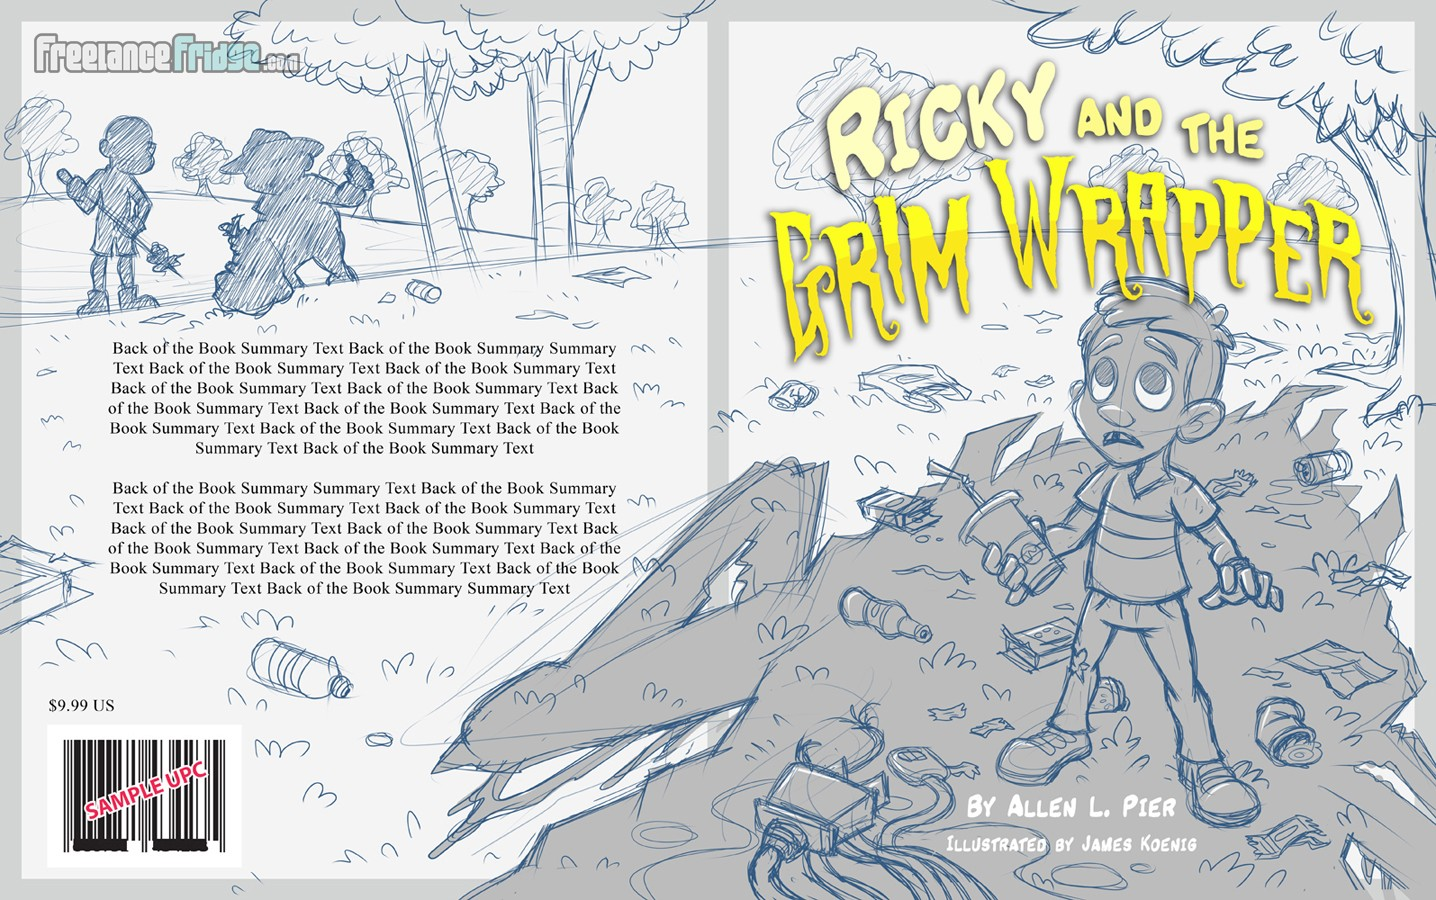 Cover Sketch Wrap Around for Childrens Book Ricky and the Grim Wrapper Boy Trash Recycling